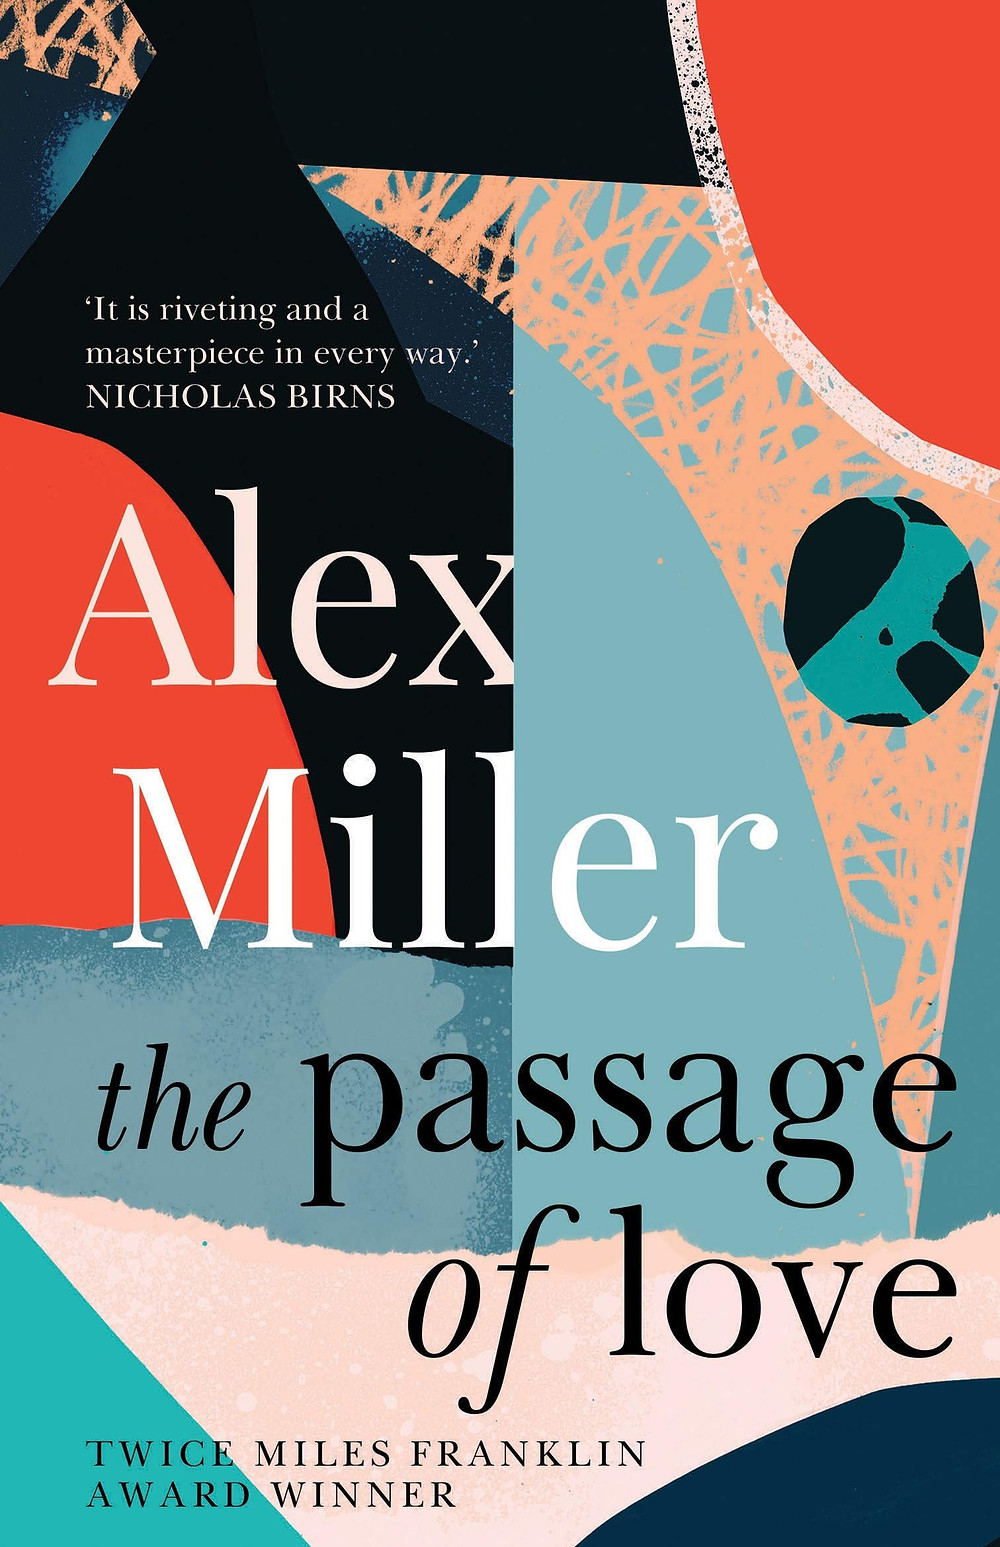 buy The Passage of Love Alex Miller 584 pages. 2017. collage book cover thebookslut book reviews the book slut